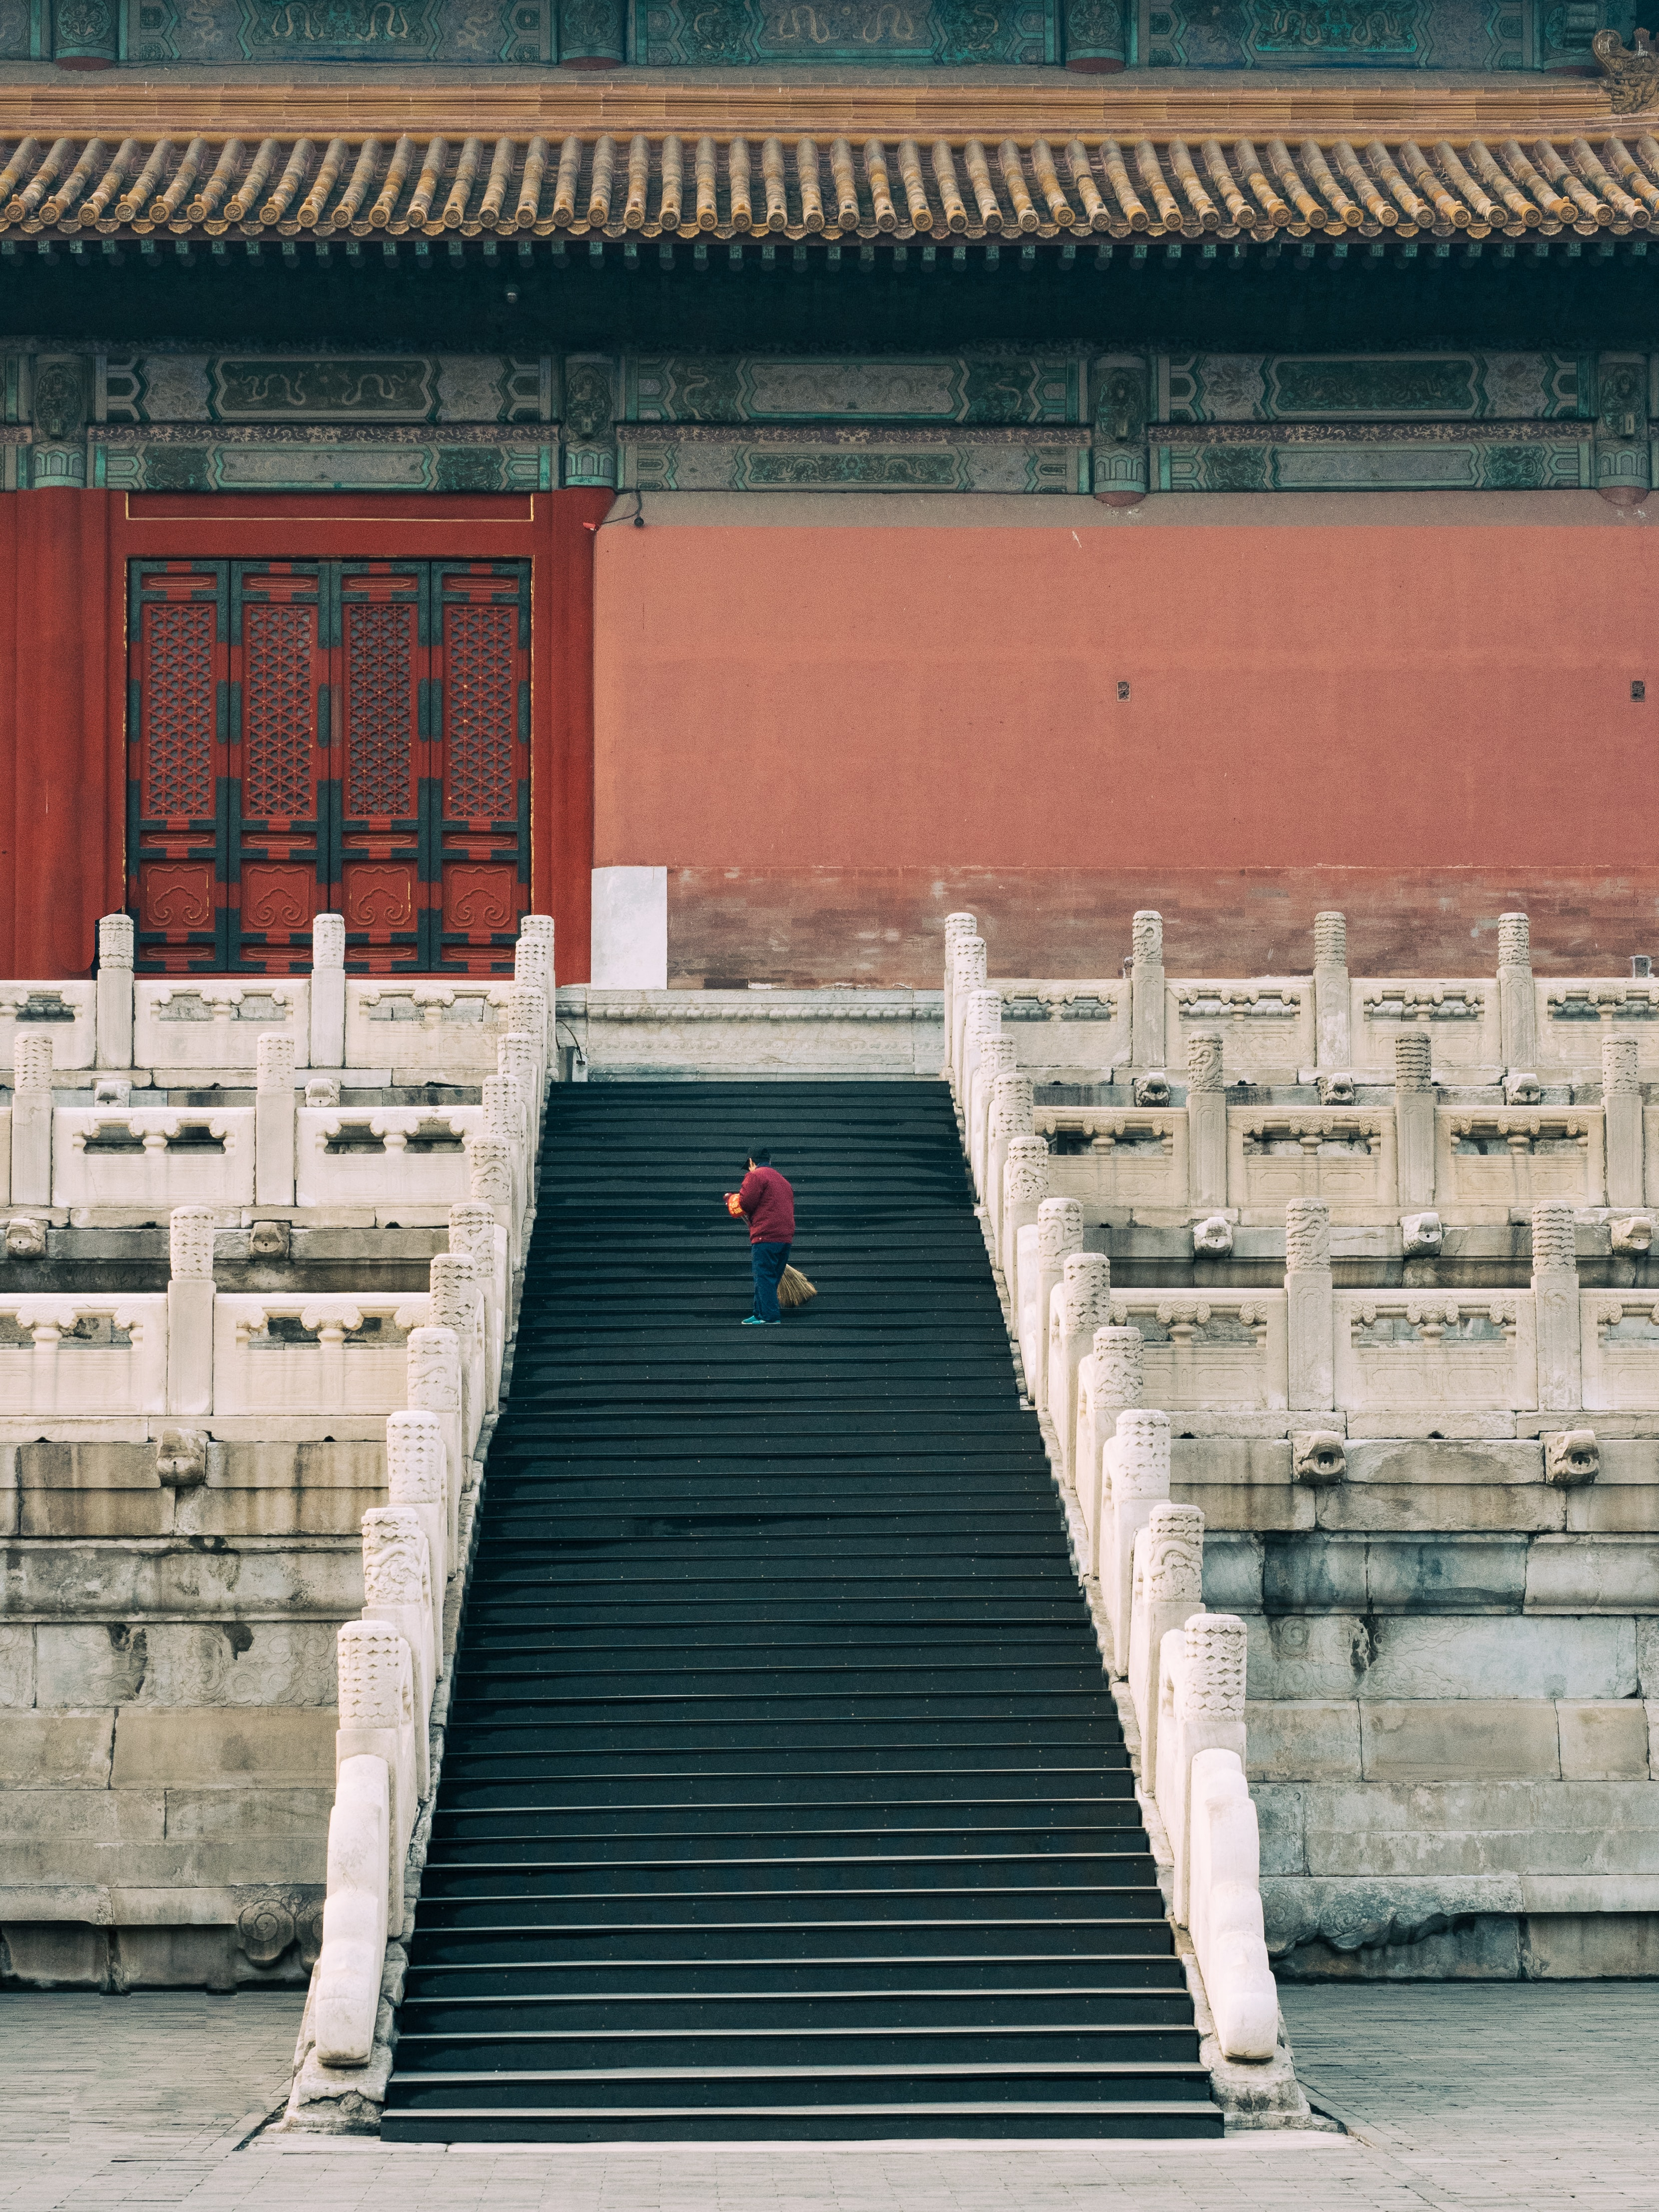 person walking on black stair